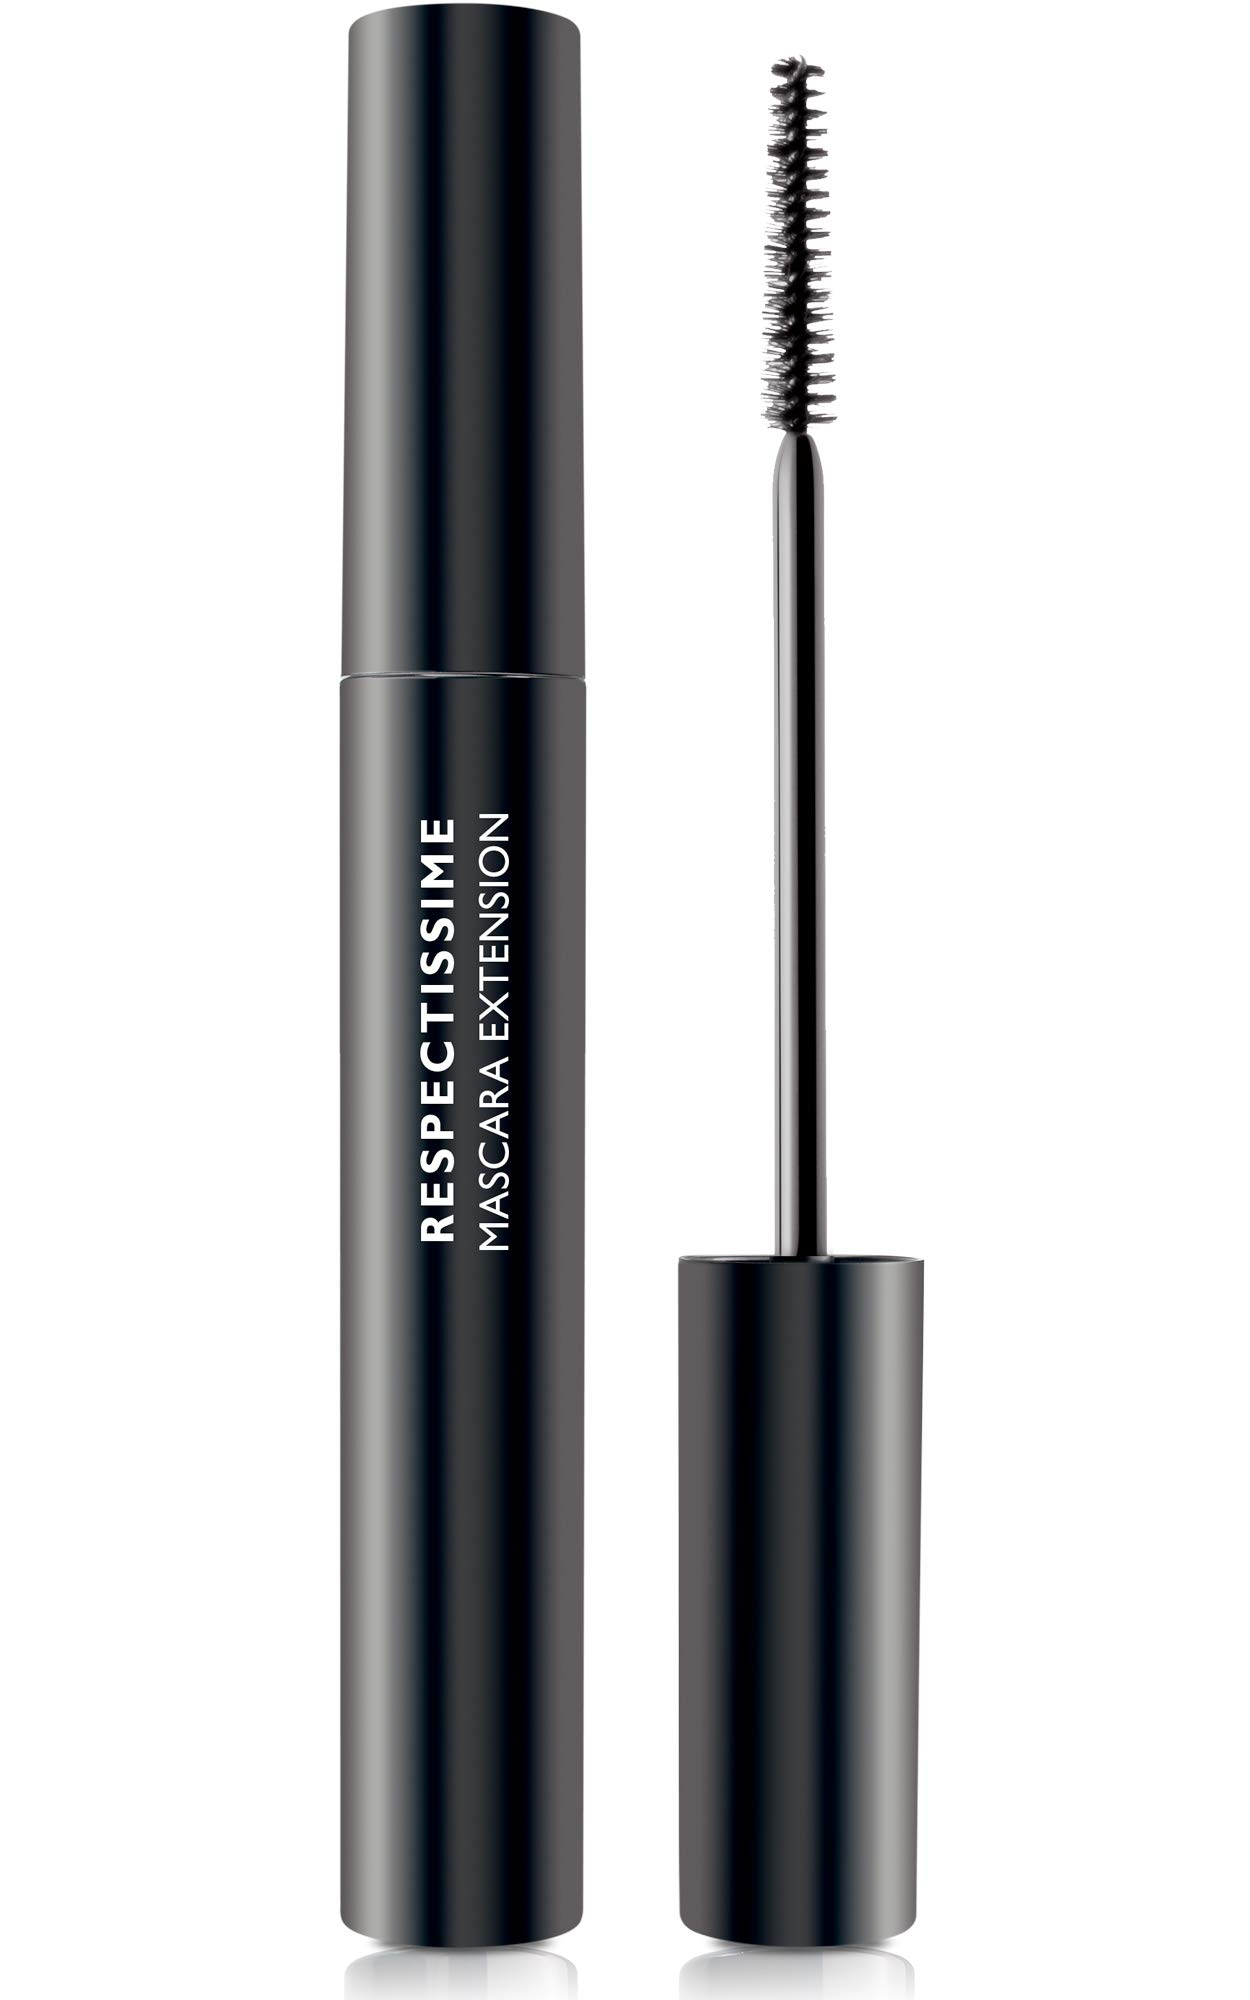 La Roche-Posay Respectissime Extension Lengthening Mascara, 1 Count